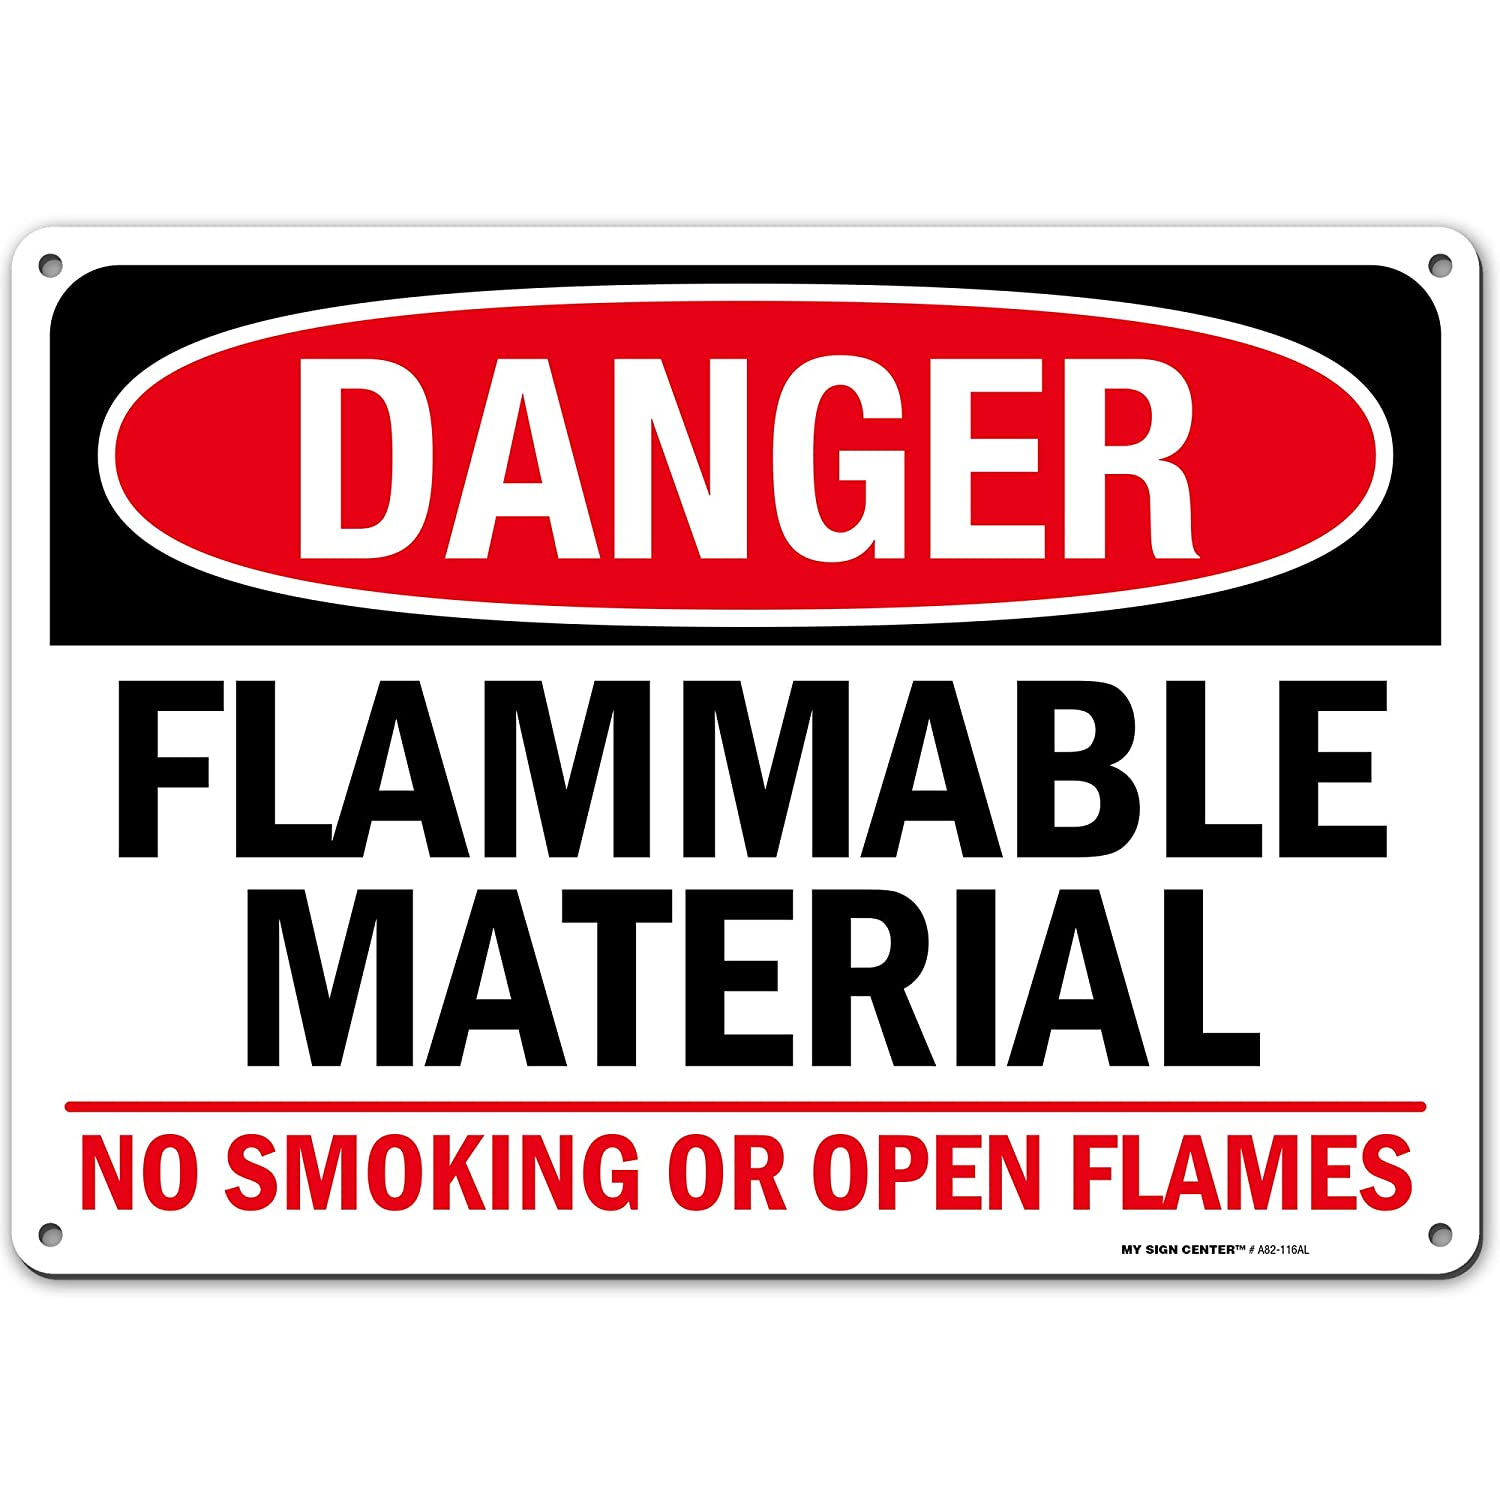 "Danger Flammable Material No Smoking Fire Hazard Sign, 10"" x 14"" Industrial Grade Aluminum, Easy Mounting, Rust-Free/Fade Resistance, Indoor/Outdoor, USA Made by MY SIGN CENTER"